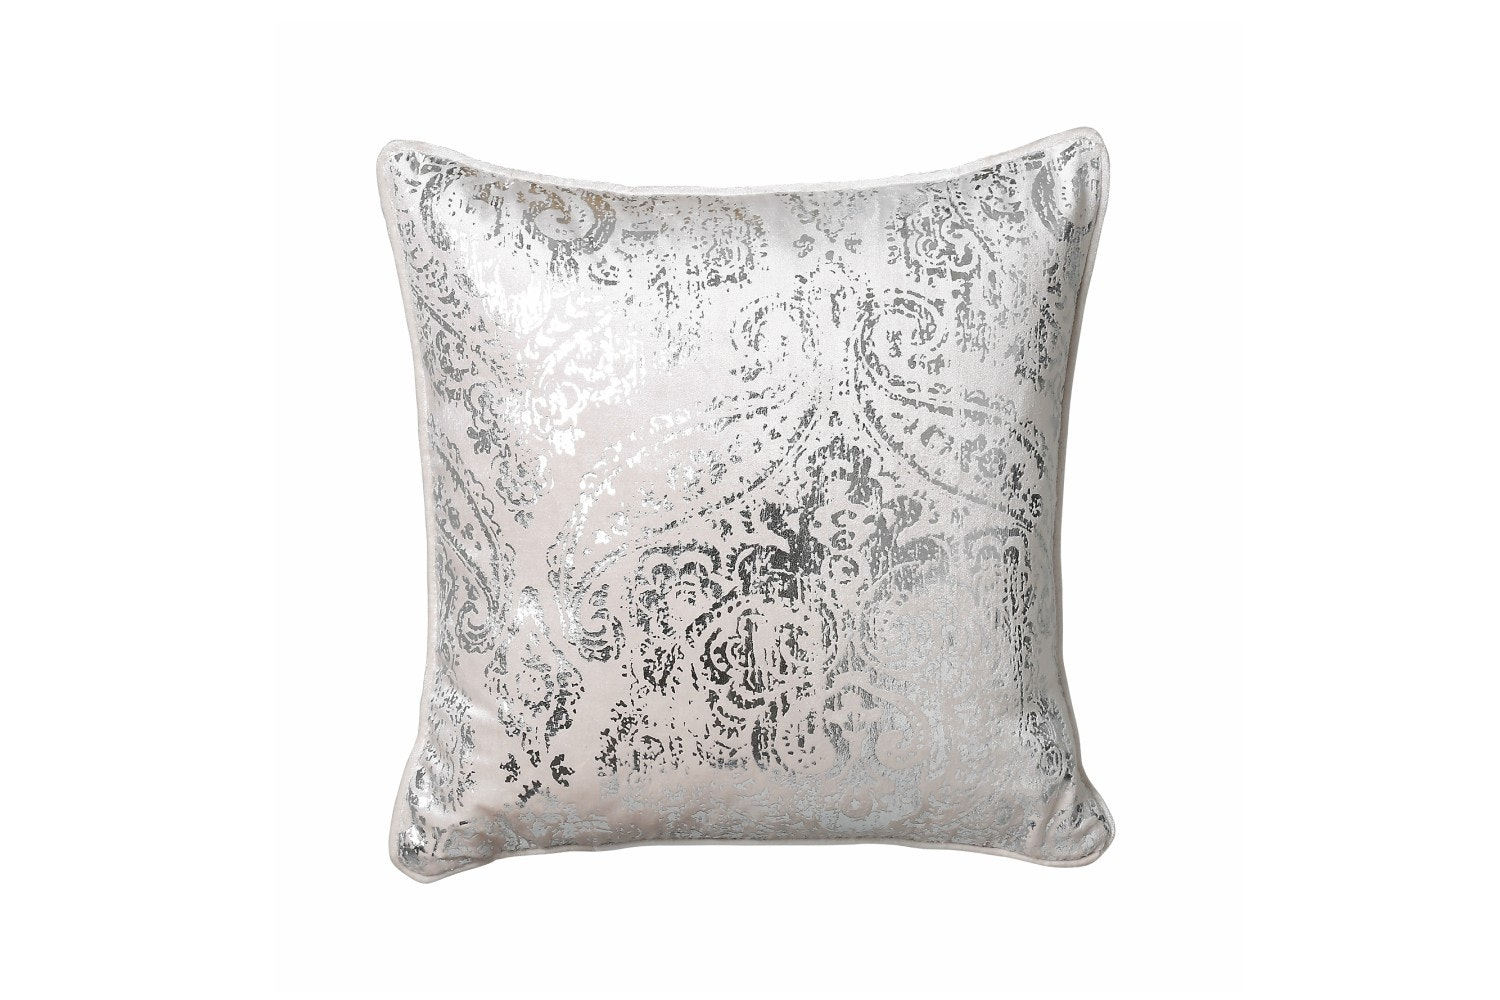 Scatterbox Opulence Damask Foil Blush Cushion